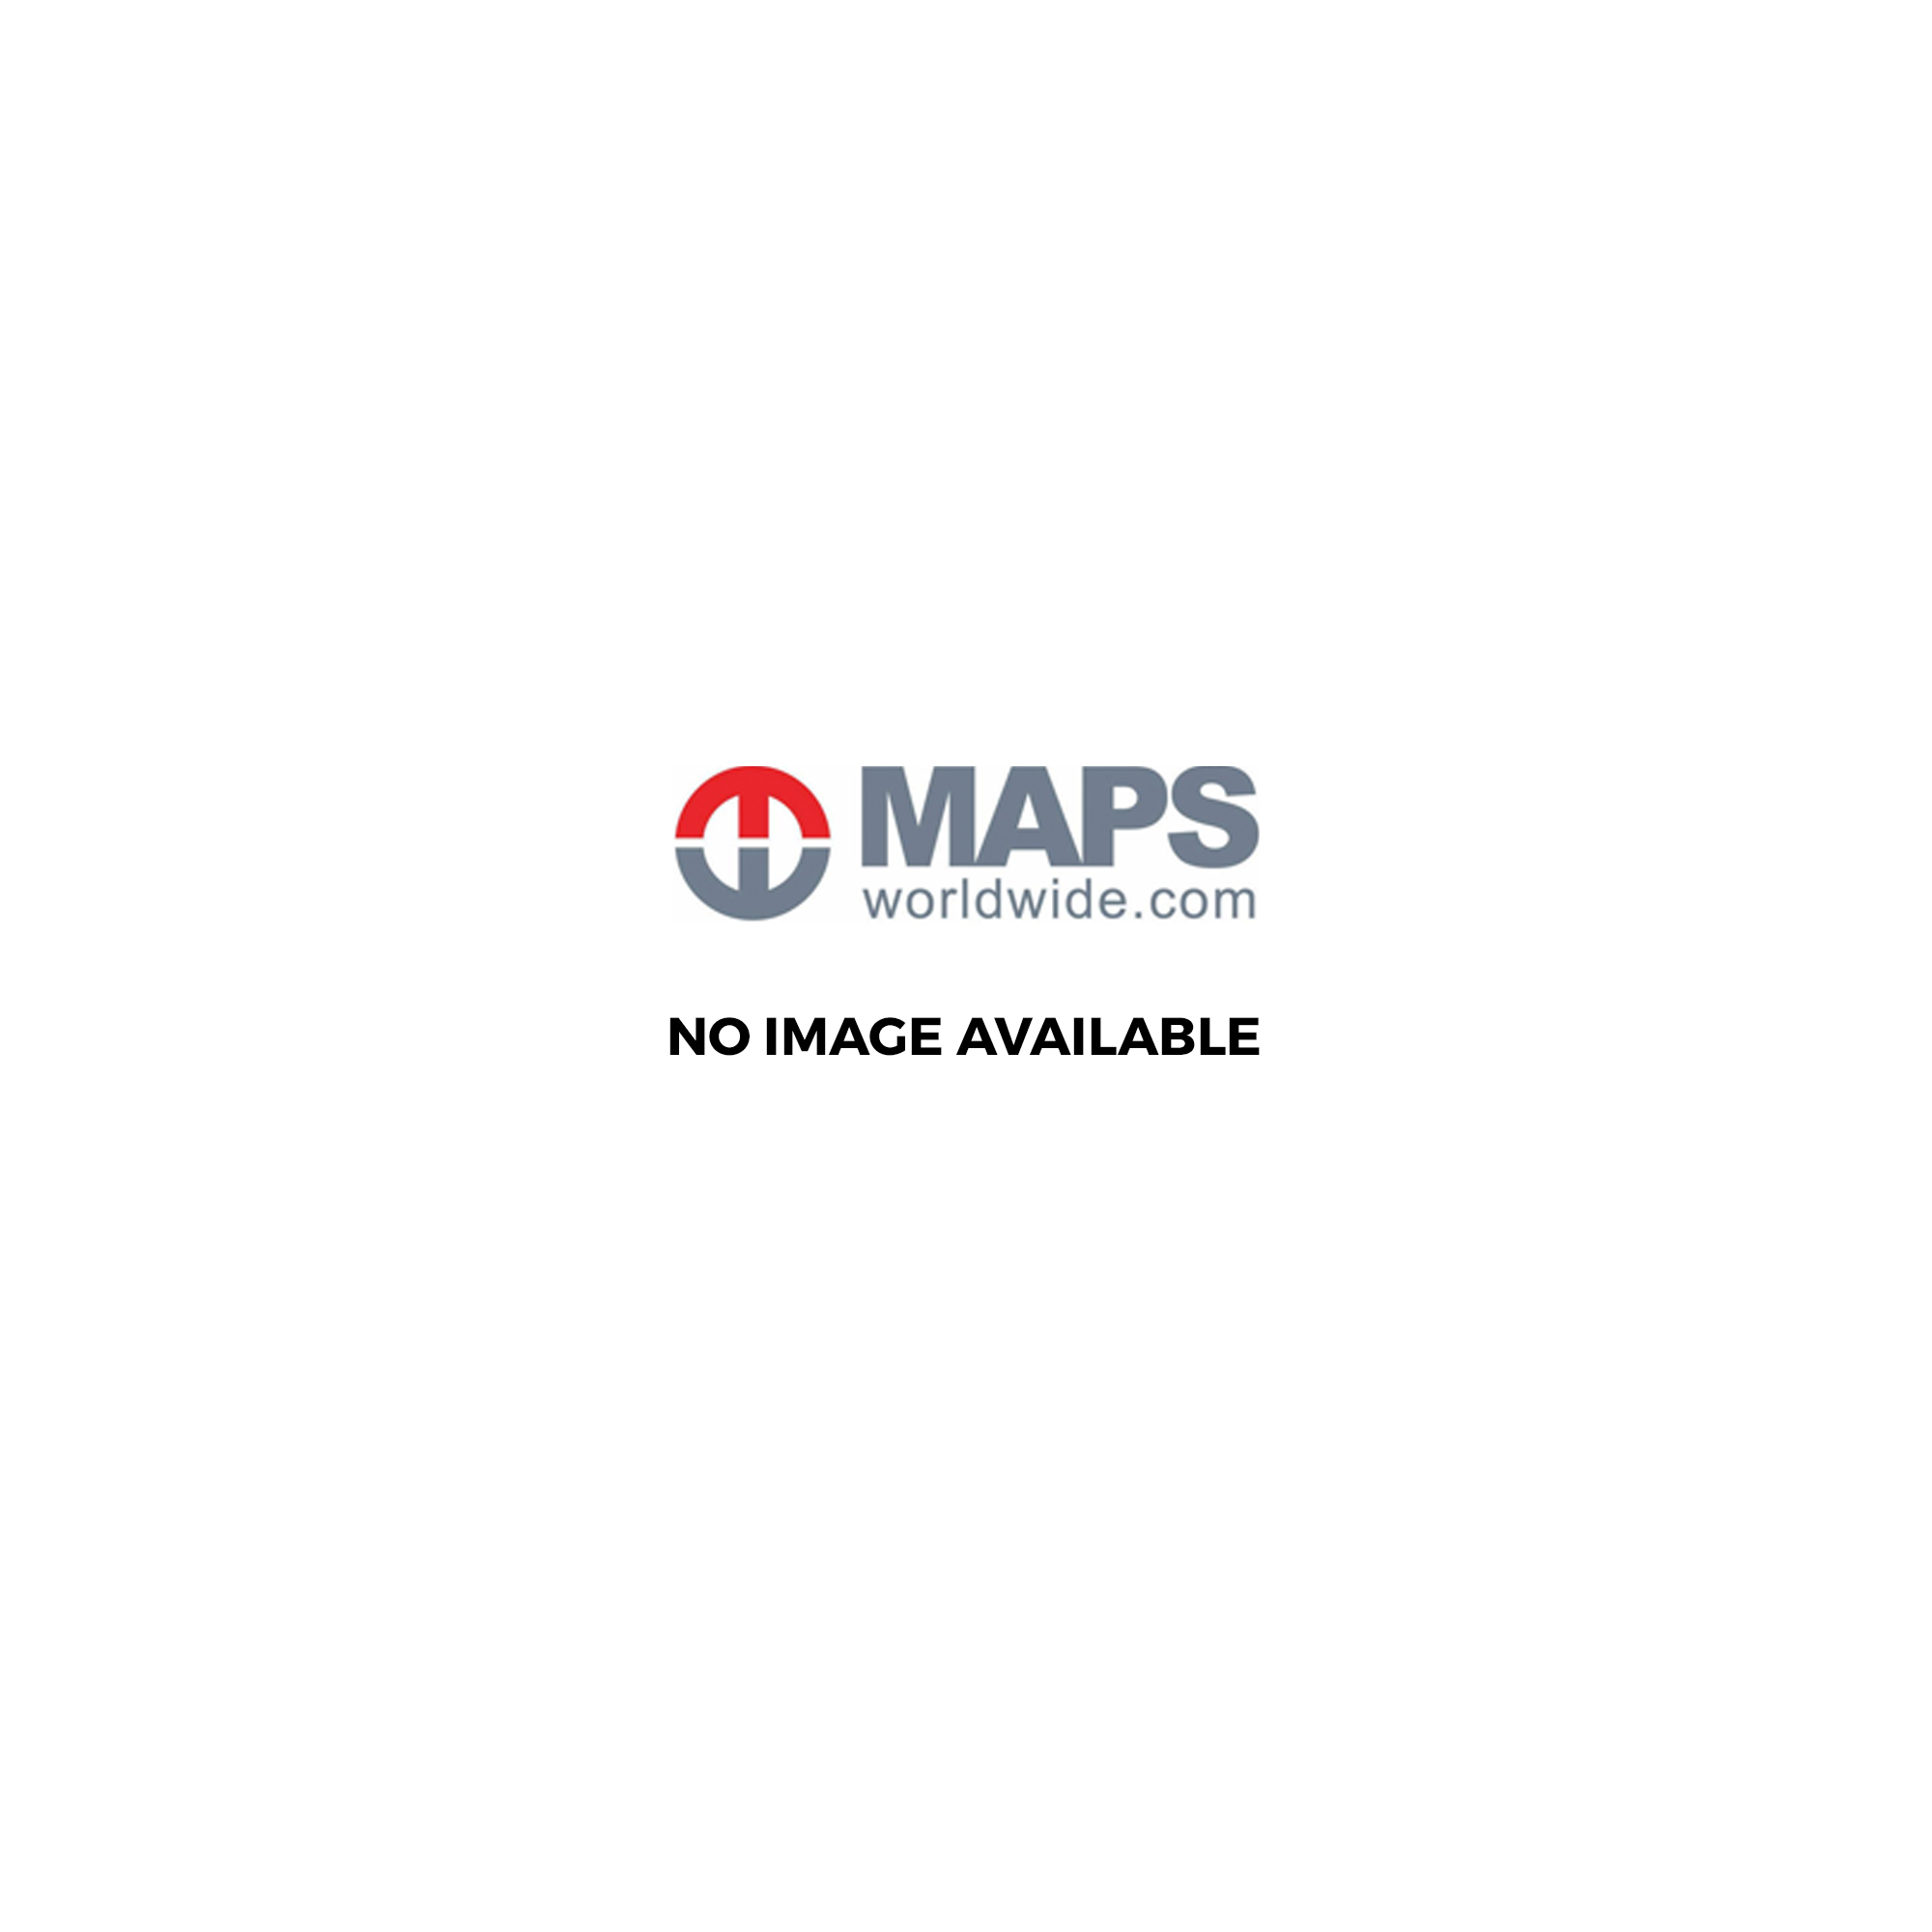 Map Of California Los Angeles.Los Angeles And Southern California Travel Map